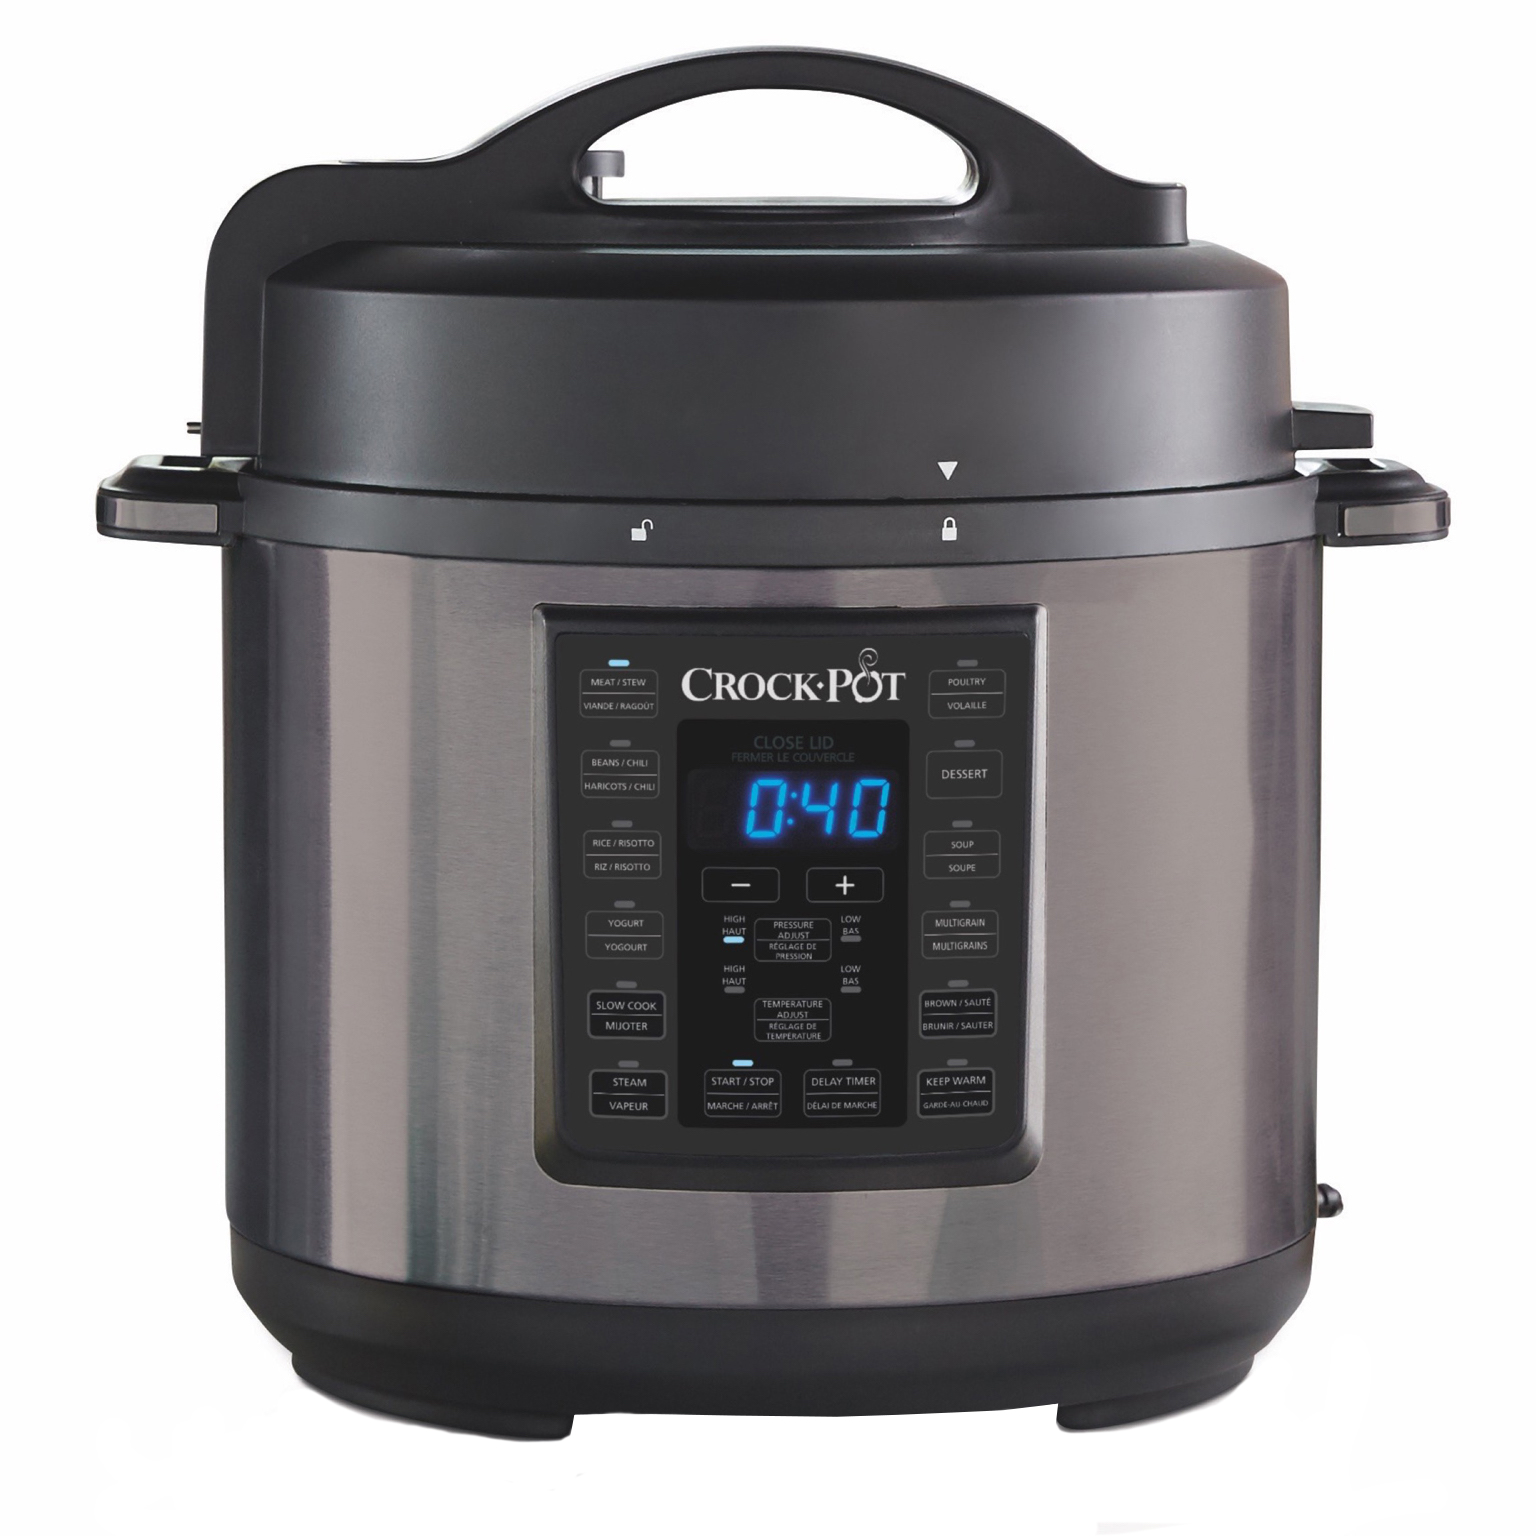 crock pot slow cooker / pressure cooker product image